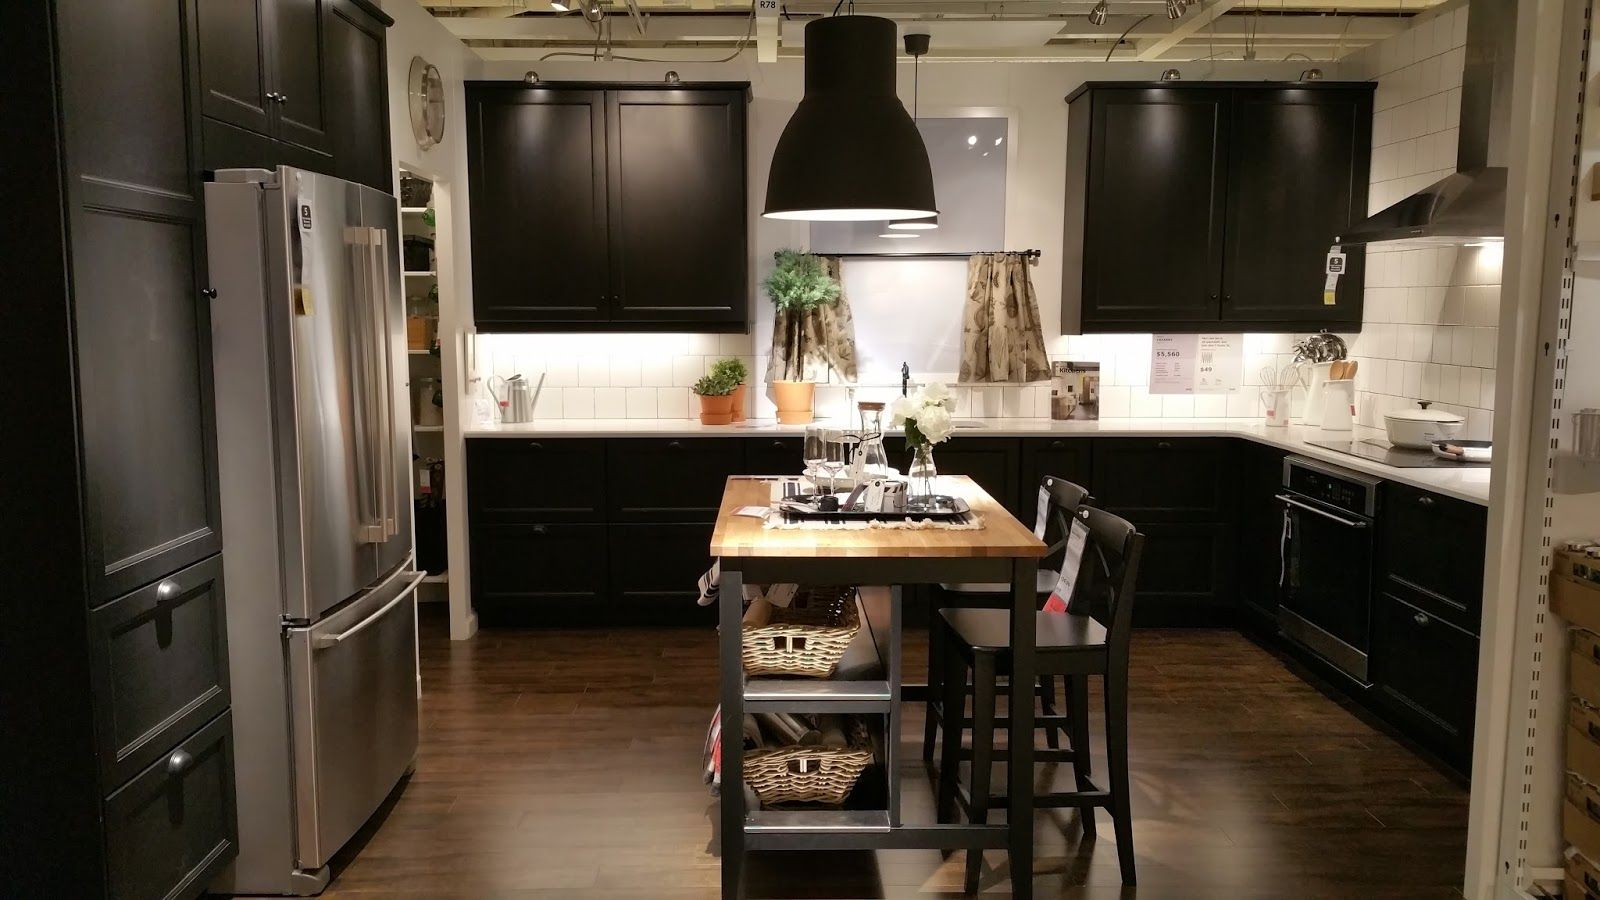 Laxarby Black Brown Design Kitchens In 2019 Ikea